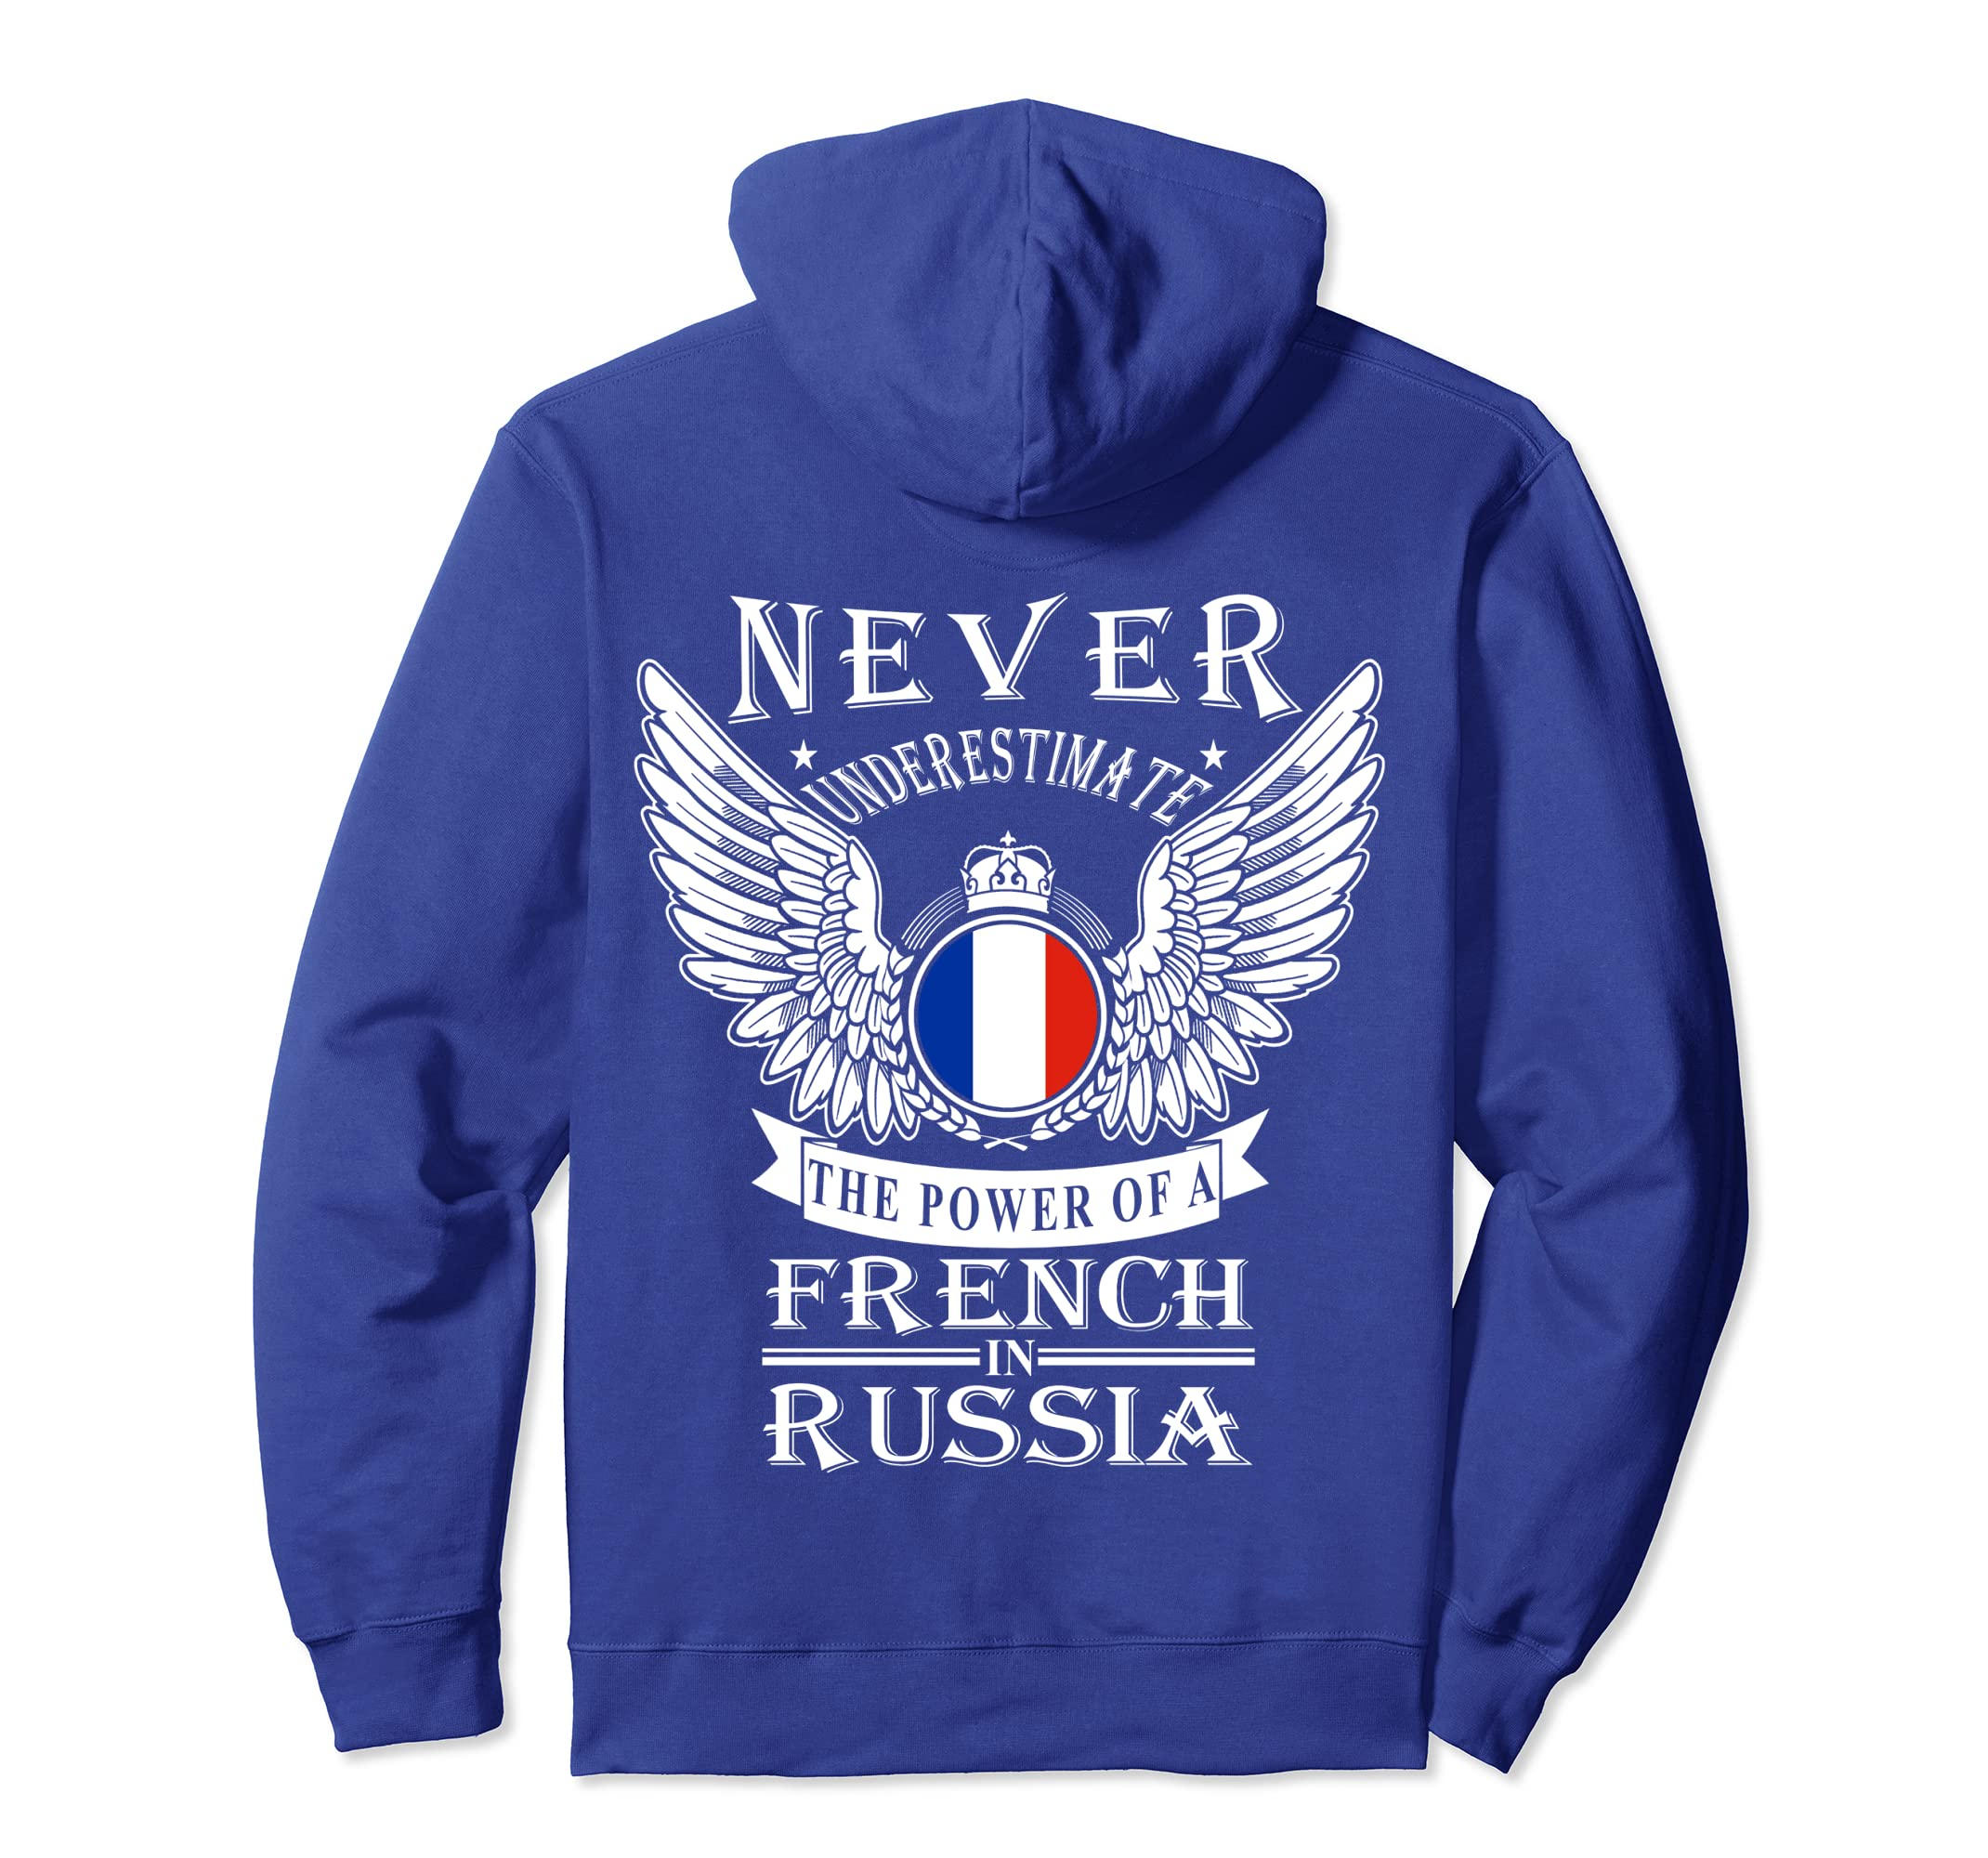 Amazon.com  French in Russia Pullover Hoodie for Men  Clothing 71233bdd34